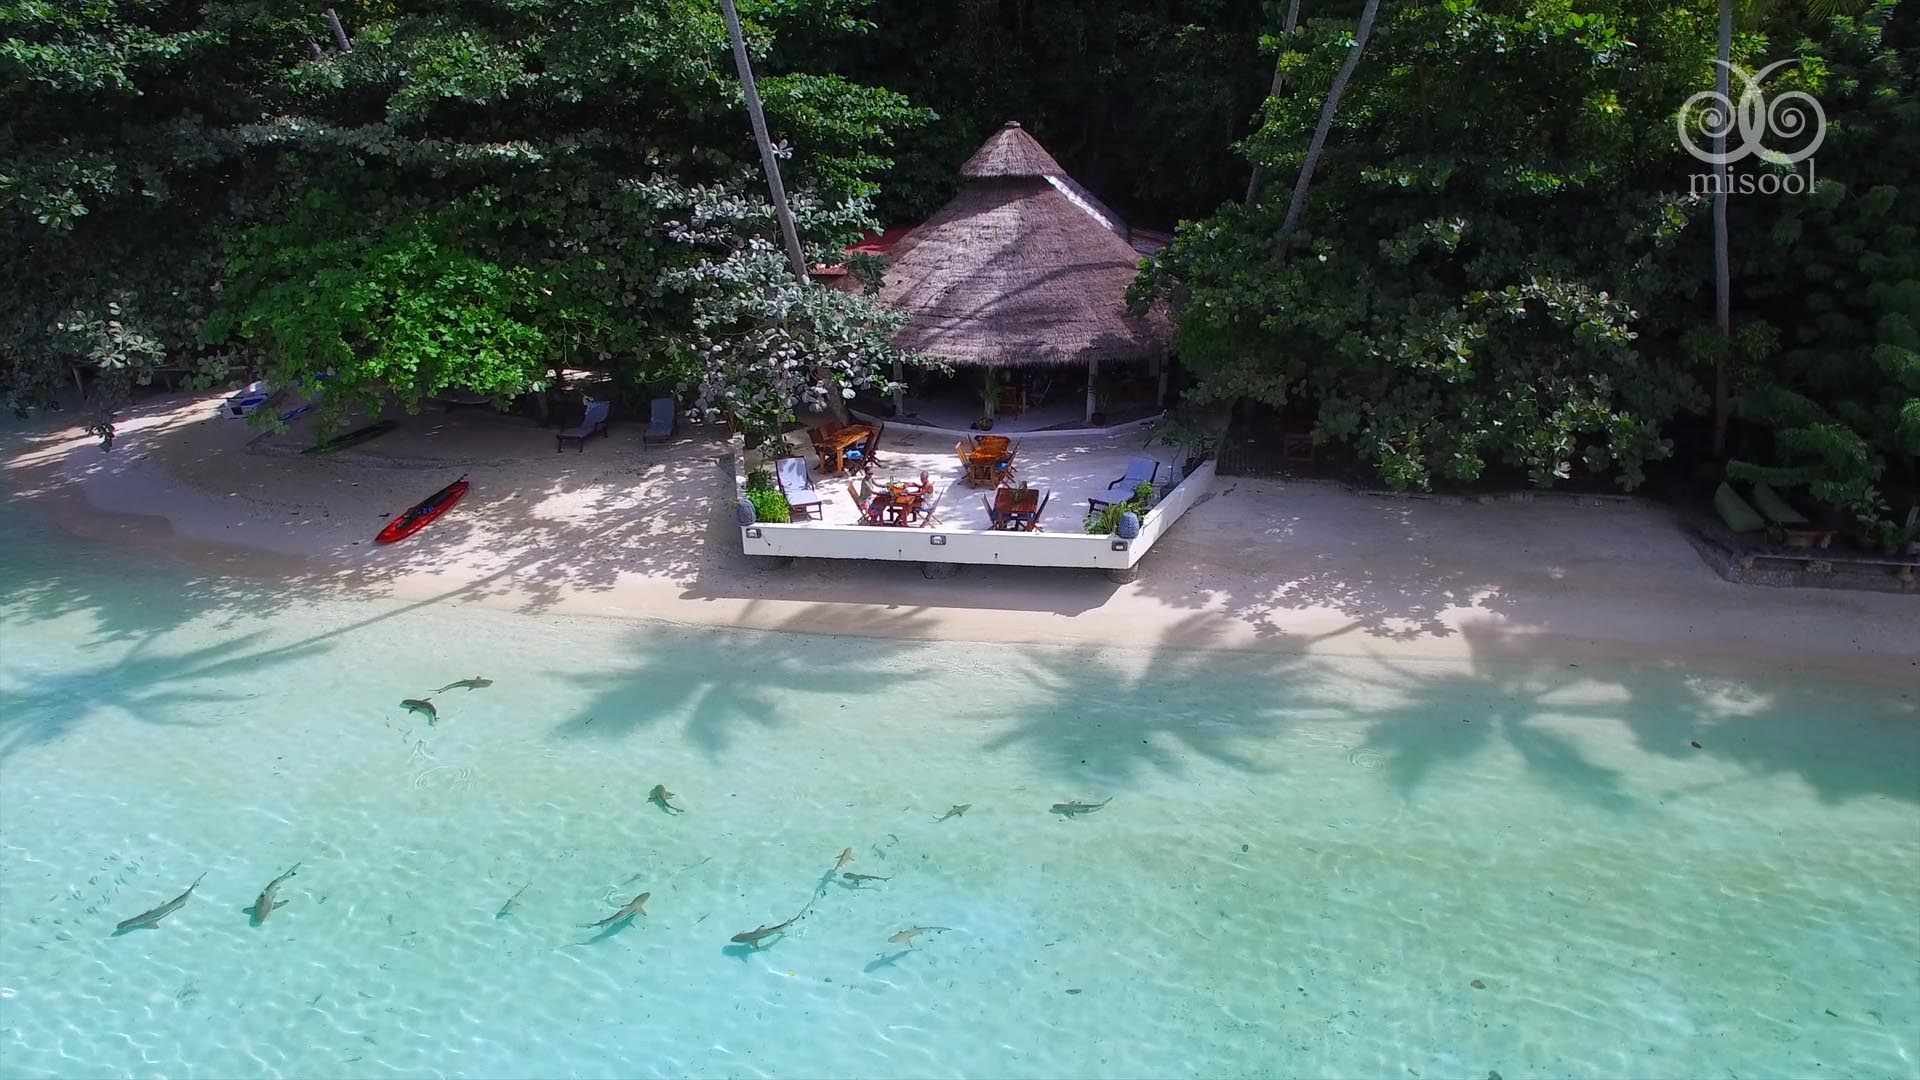 Misool resort bungalow with baby sharks in the shallow water